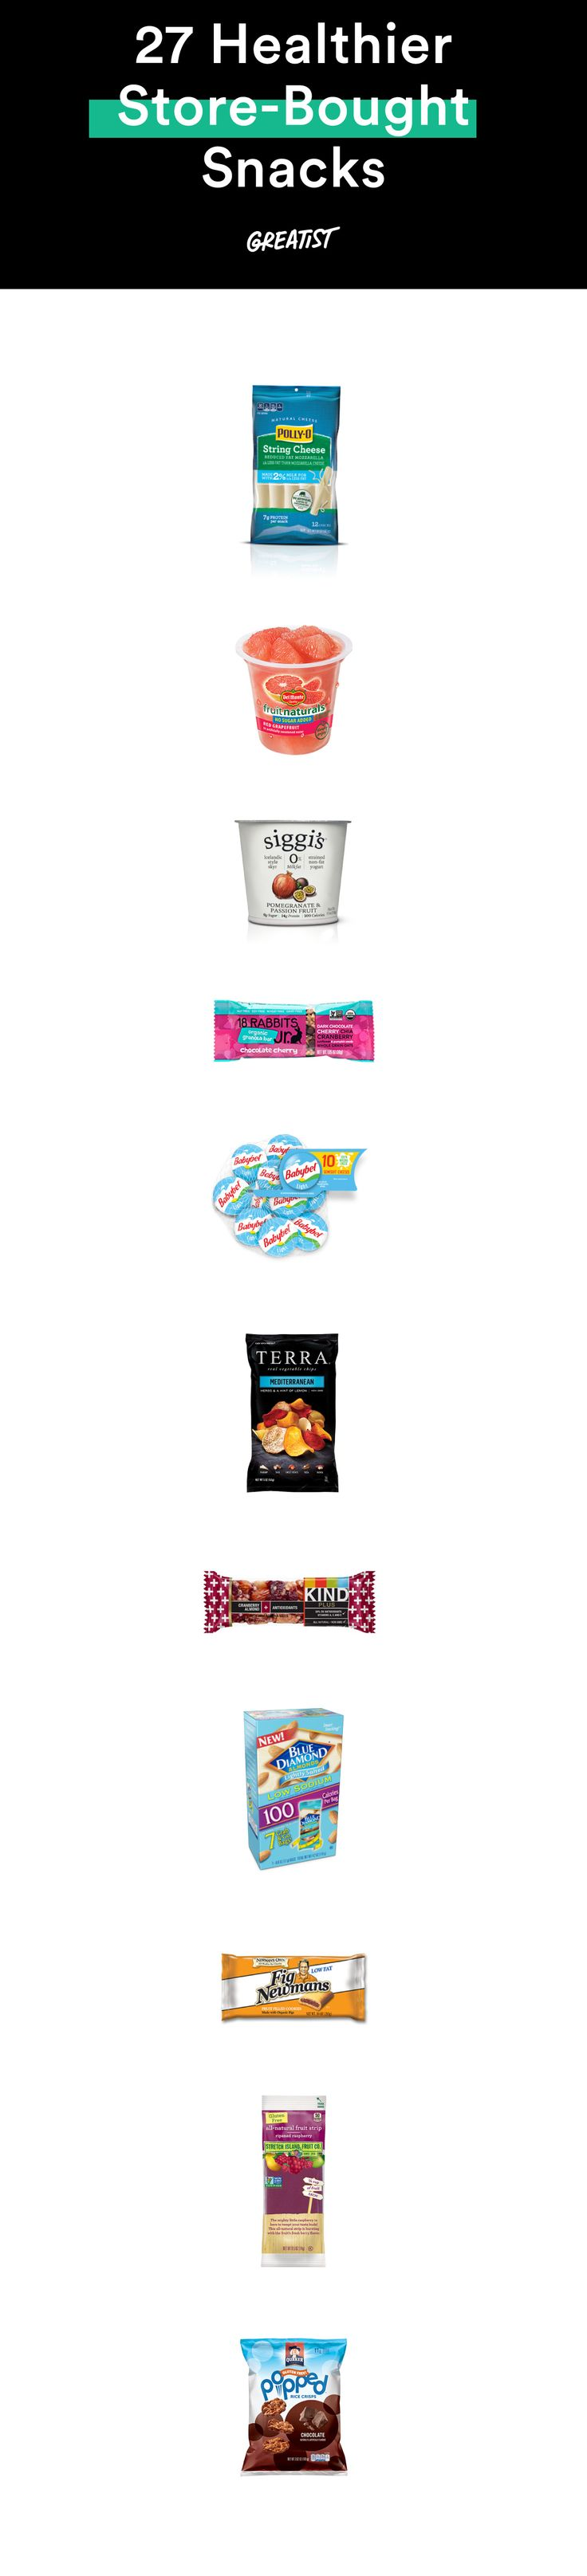 Eating healthy while on the go isn't just a pipe dream if you grab one of these bites. #healthy #snacks #groceries http://greatist.com/health/31-healthier-store-bought-snacks-under-150-calories